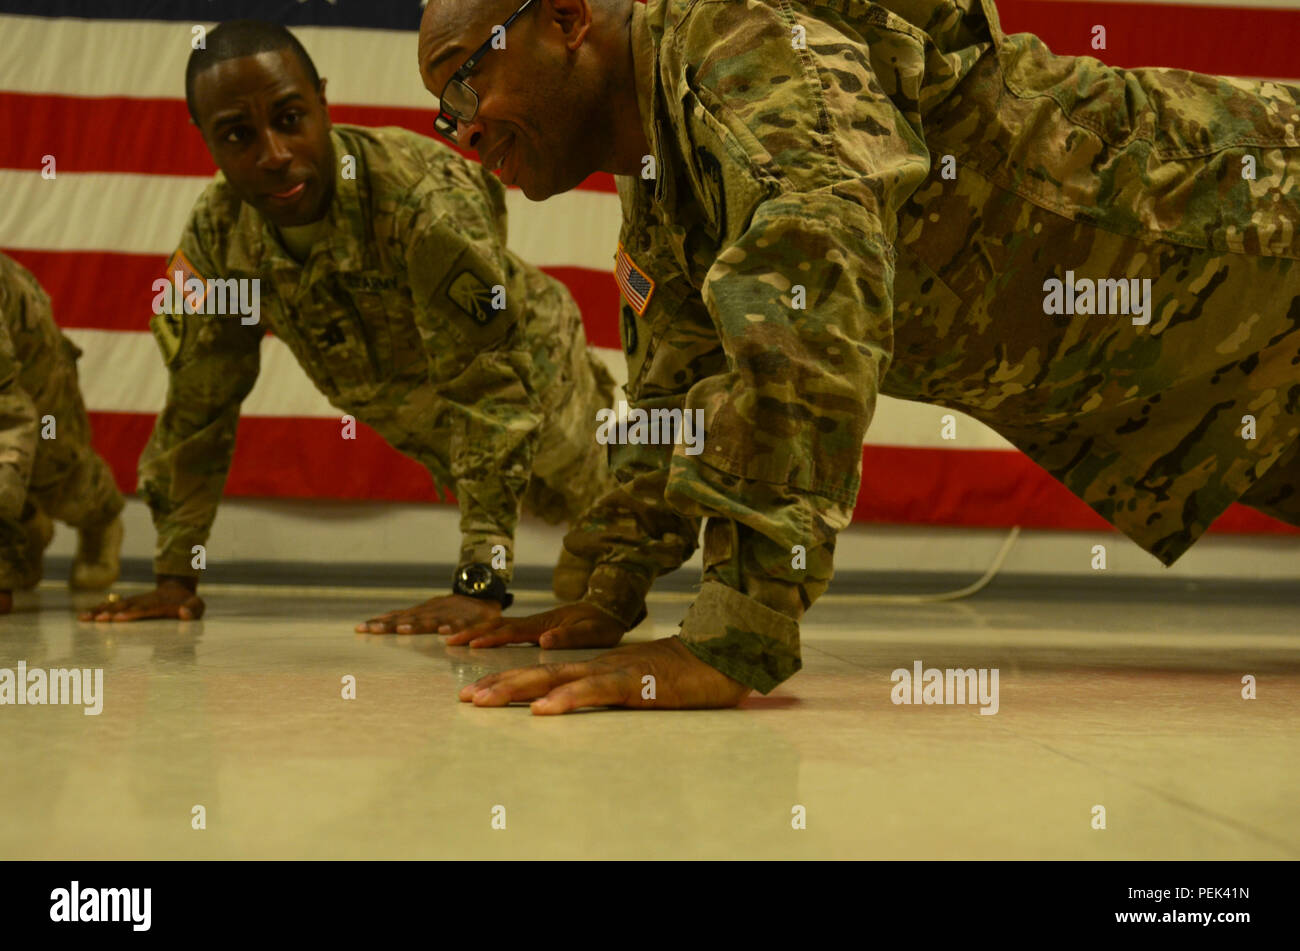 Newly promoted Sgt. Maj. Bryan Smith, the operations noncommissioned officer in charge of 149th Human Resource Texas Army National Guard, originally from Freeport, Texas, along with some Soldiers and officers, conducts in-cadence pushups during his promotion ceremony at Mihail Kogălniceanu Air Force Base, Romania, Dec. 10, 2015. (U.S. Army Photo by Staff Sgt. Steven M. Colvin/Released) - Stock Image